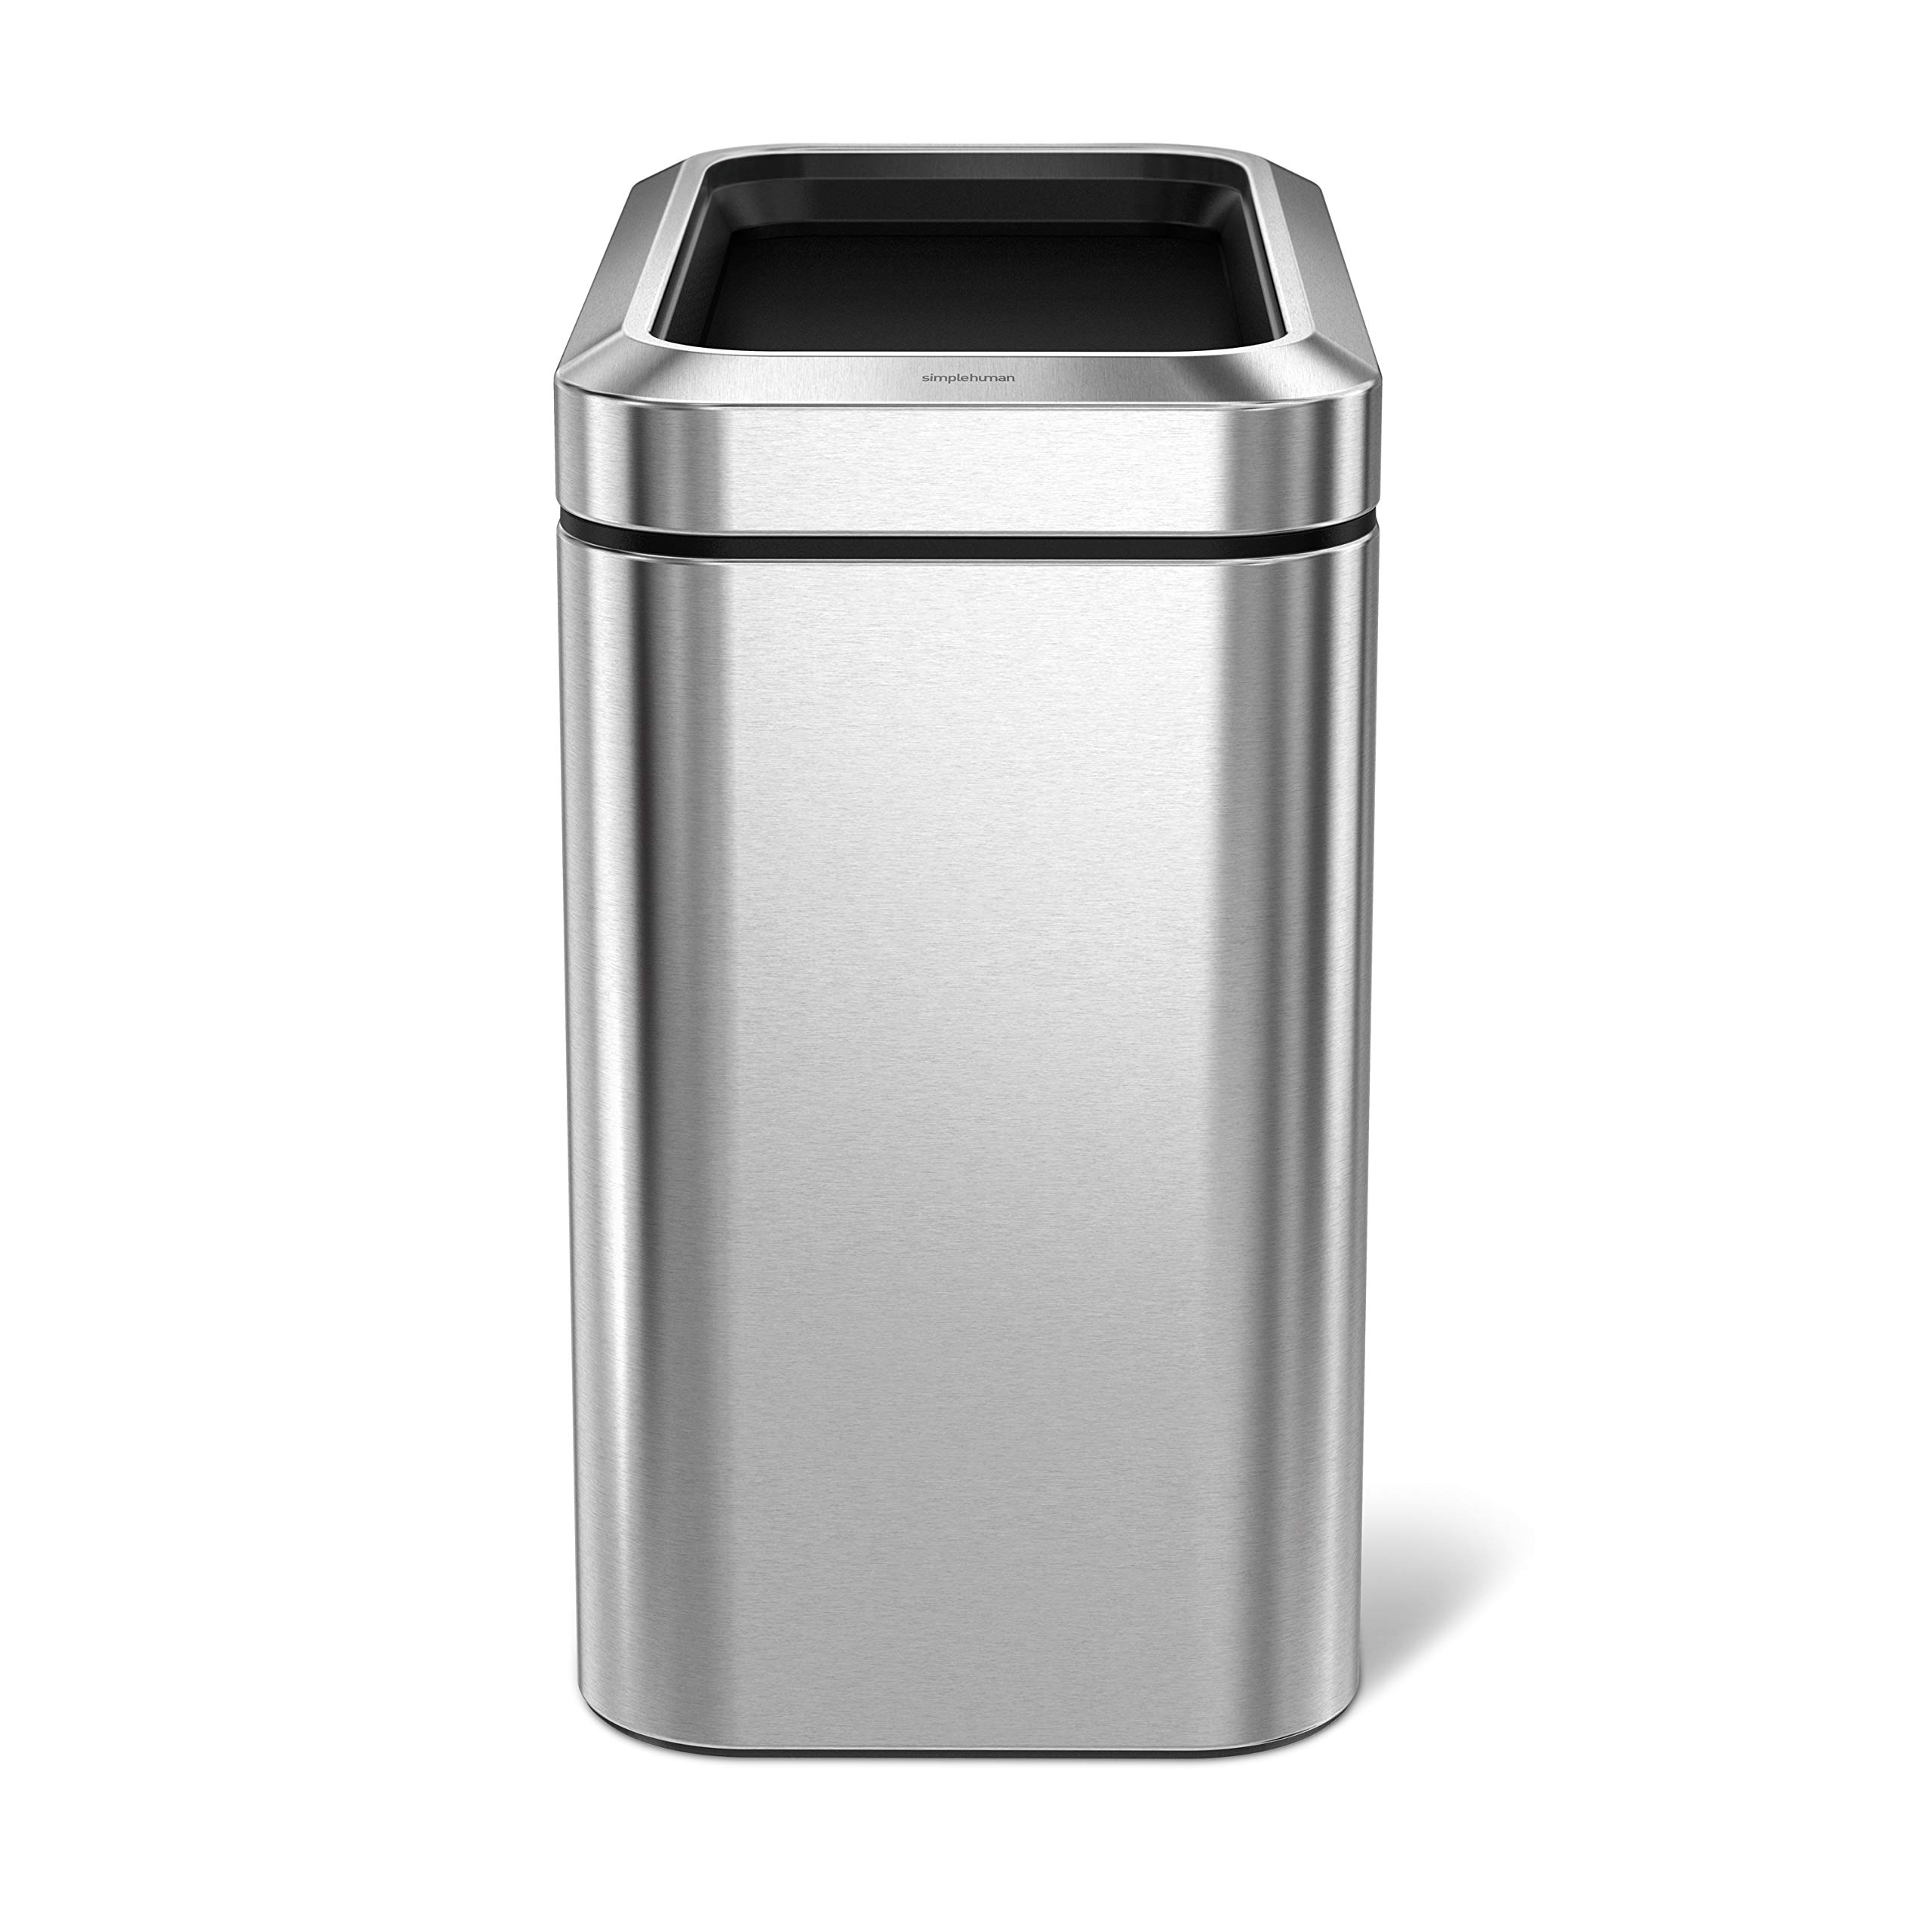 simplehuman 25 Litre Slim Open Commercial Trash can, Brushed Stainless Steel 25 L (6.6 Gal), 2 Piece